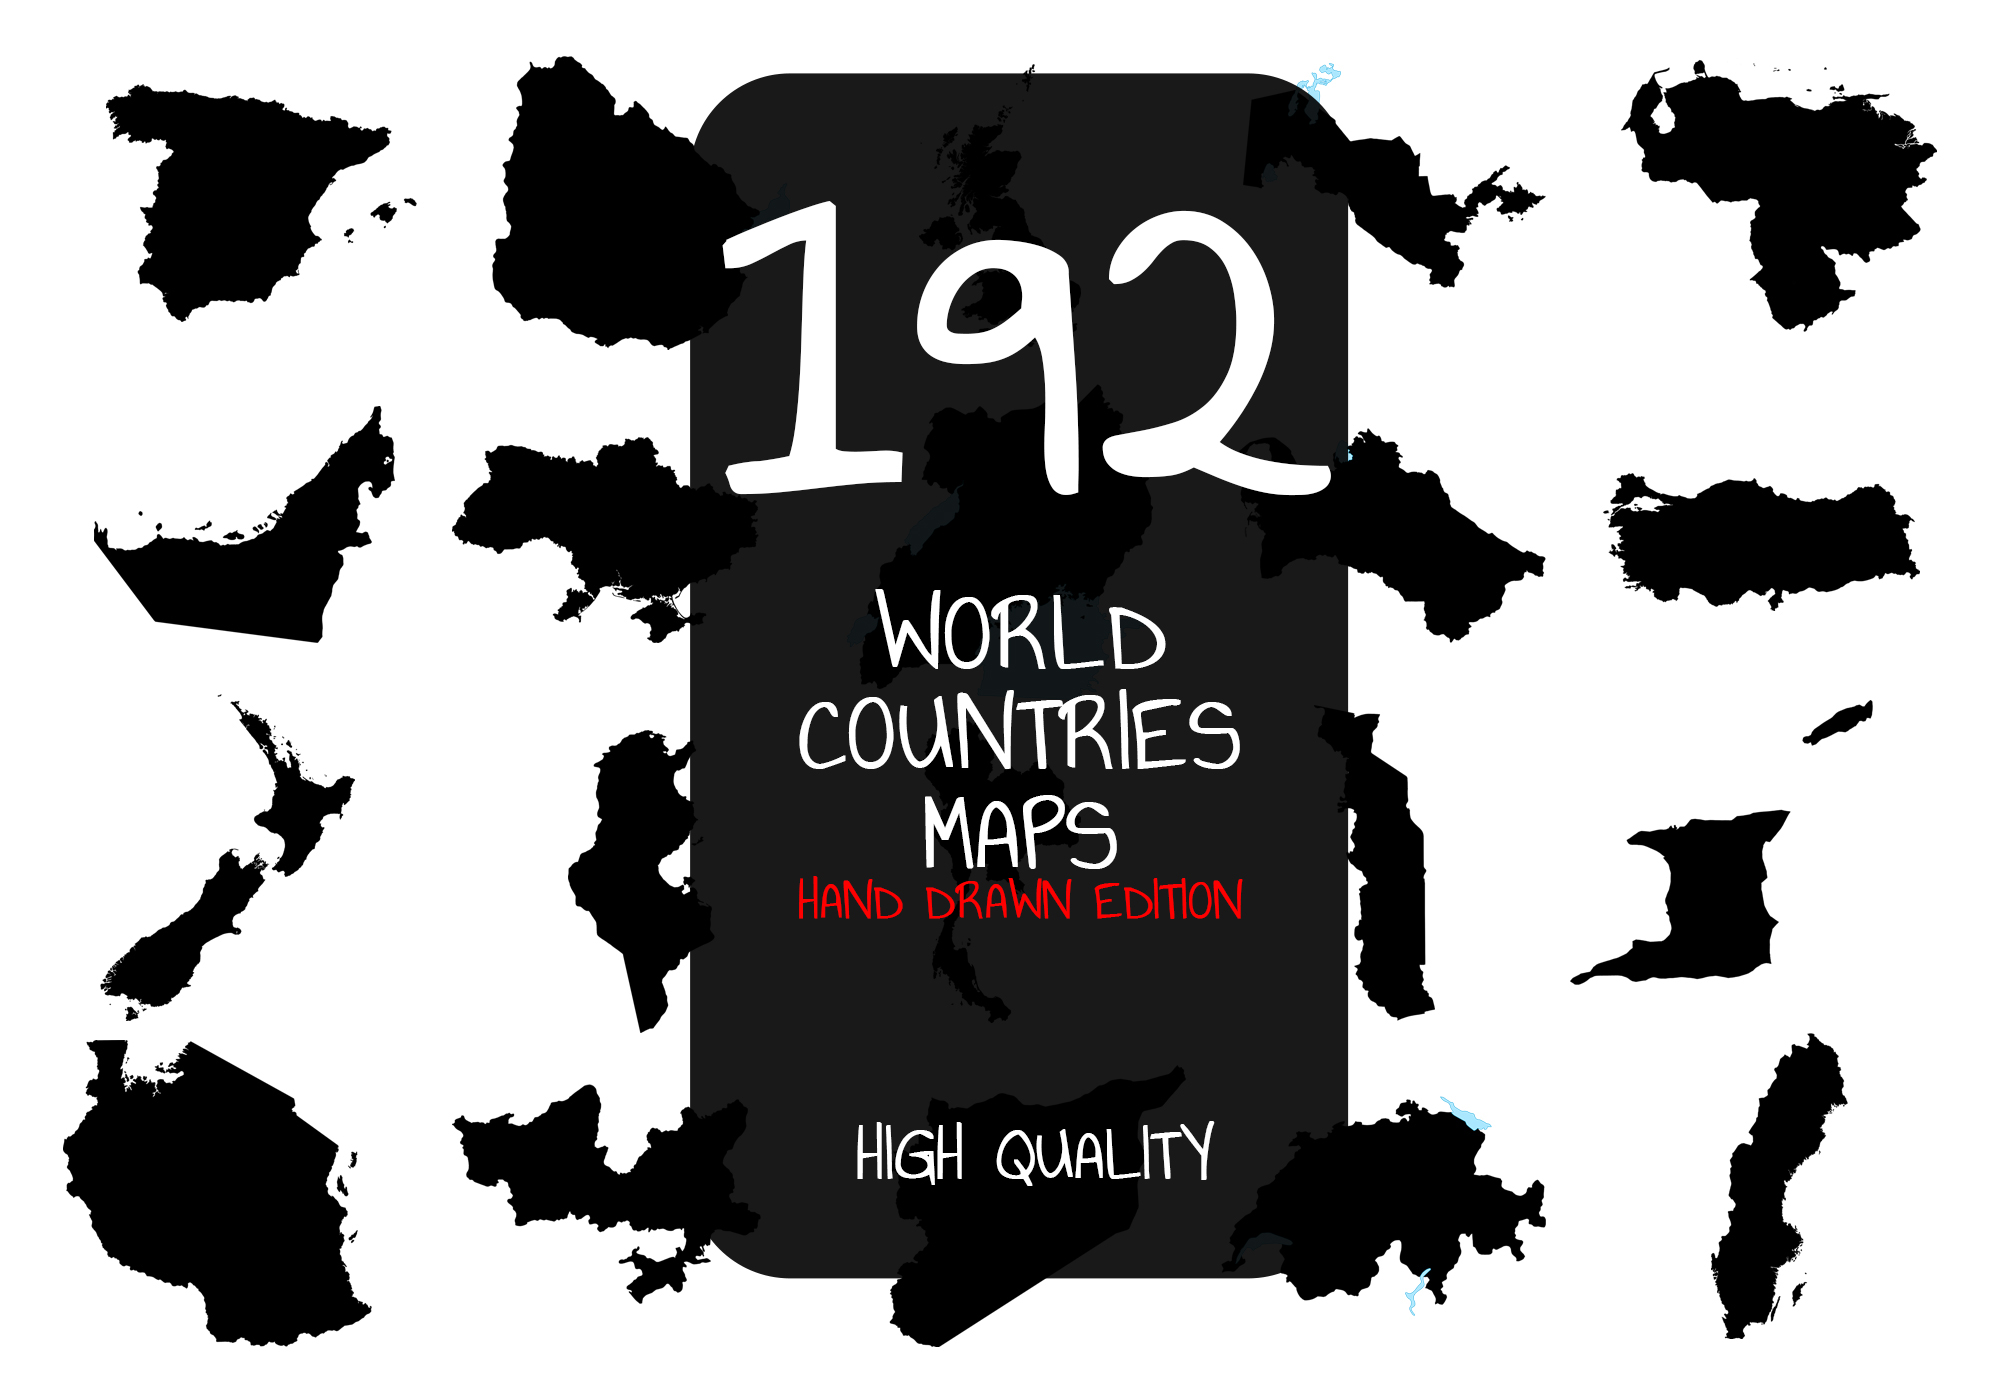 192 Hand Drawn World Countries Maps SVG File